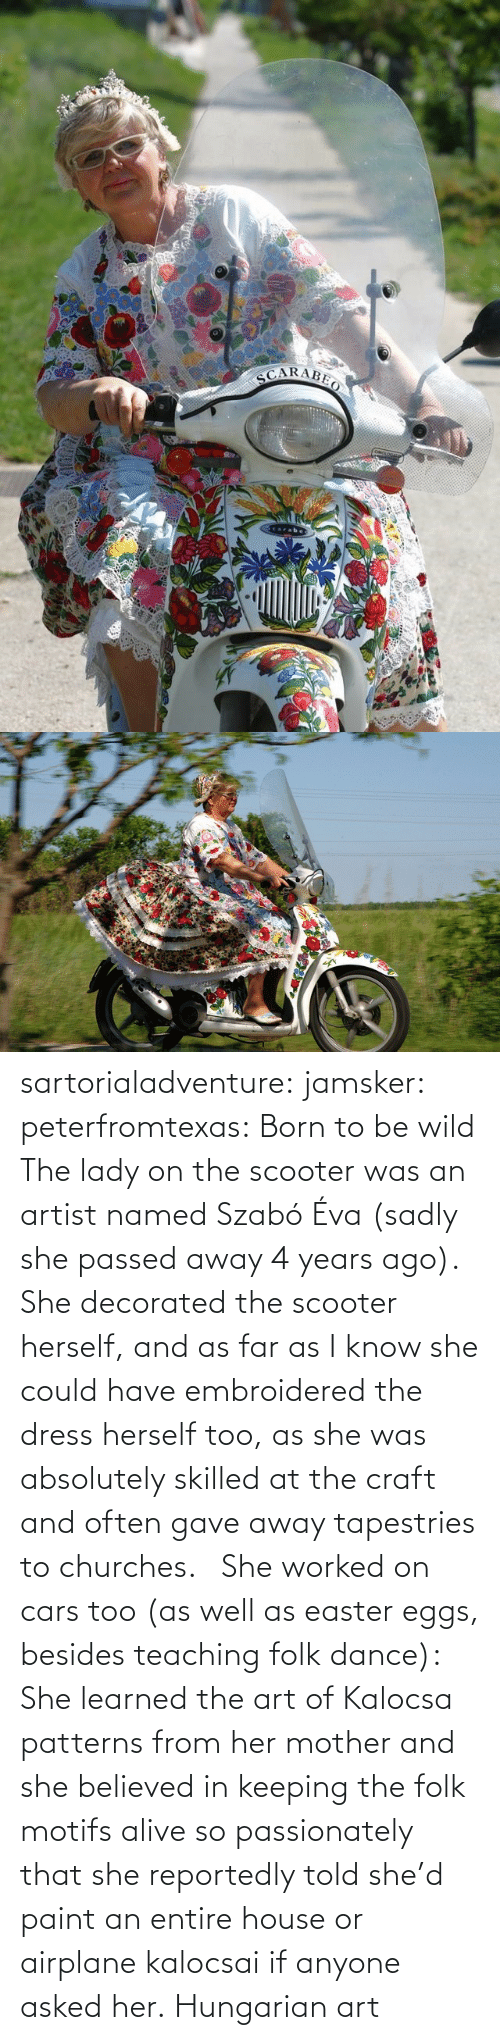 Dress: sartorialadventure: jamsker:  peterfromtexas: Born to be wild The lady on the scooter was an artist named Szabó Éva (sadly she passed away 4 years ago). She decorated the scooter herself, and as far as I know she could have embroidered the dress herself too, as she was absolutely skilled at the craft and often gave away tapestries to churches.   She worked on cars too (as well as easter eggs, besides teaching folk dance): She learned the art of Kalocsa patterns from her mother and she believed in keeping the folk motifs alive so passionately that she reportedly told she'd paint an entire house or airplane kalocsai if anyone asked her.  Hungarian art